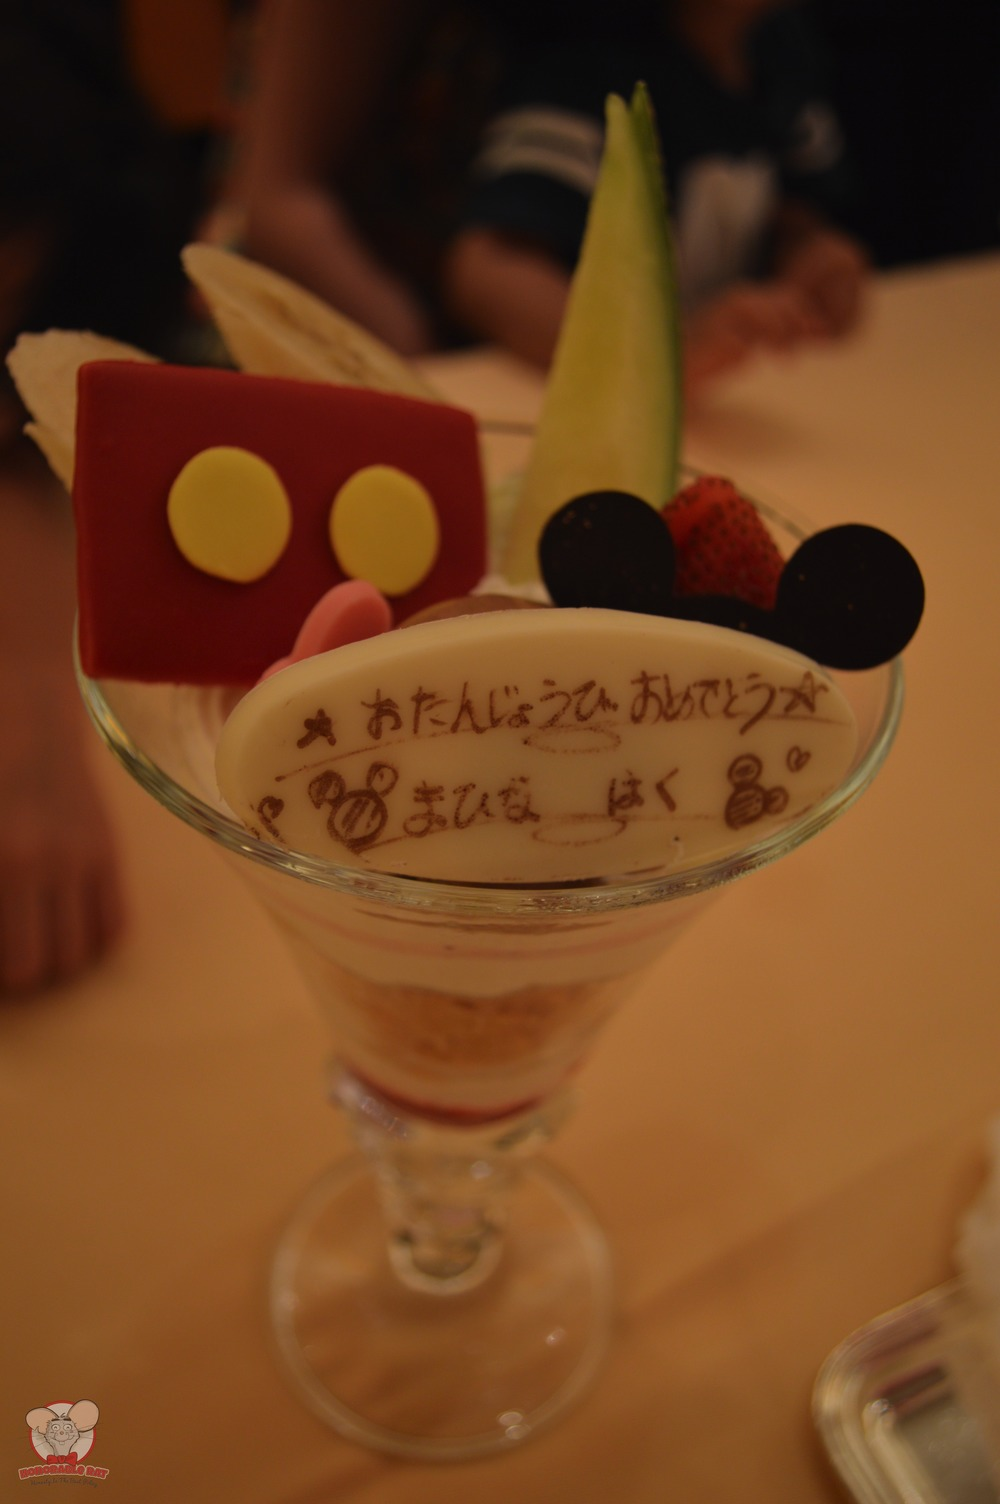 The parfait that Mickey and the kids created together